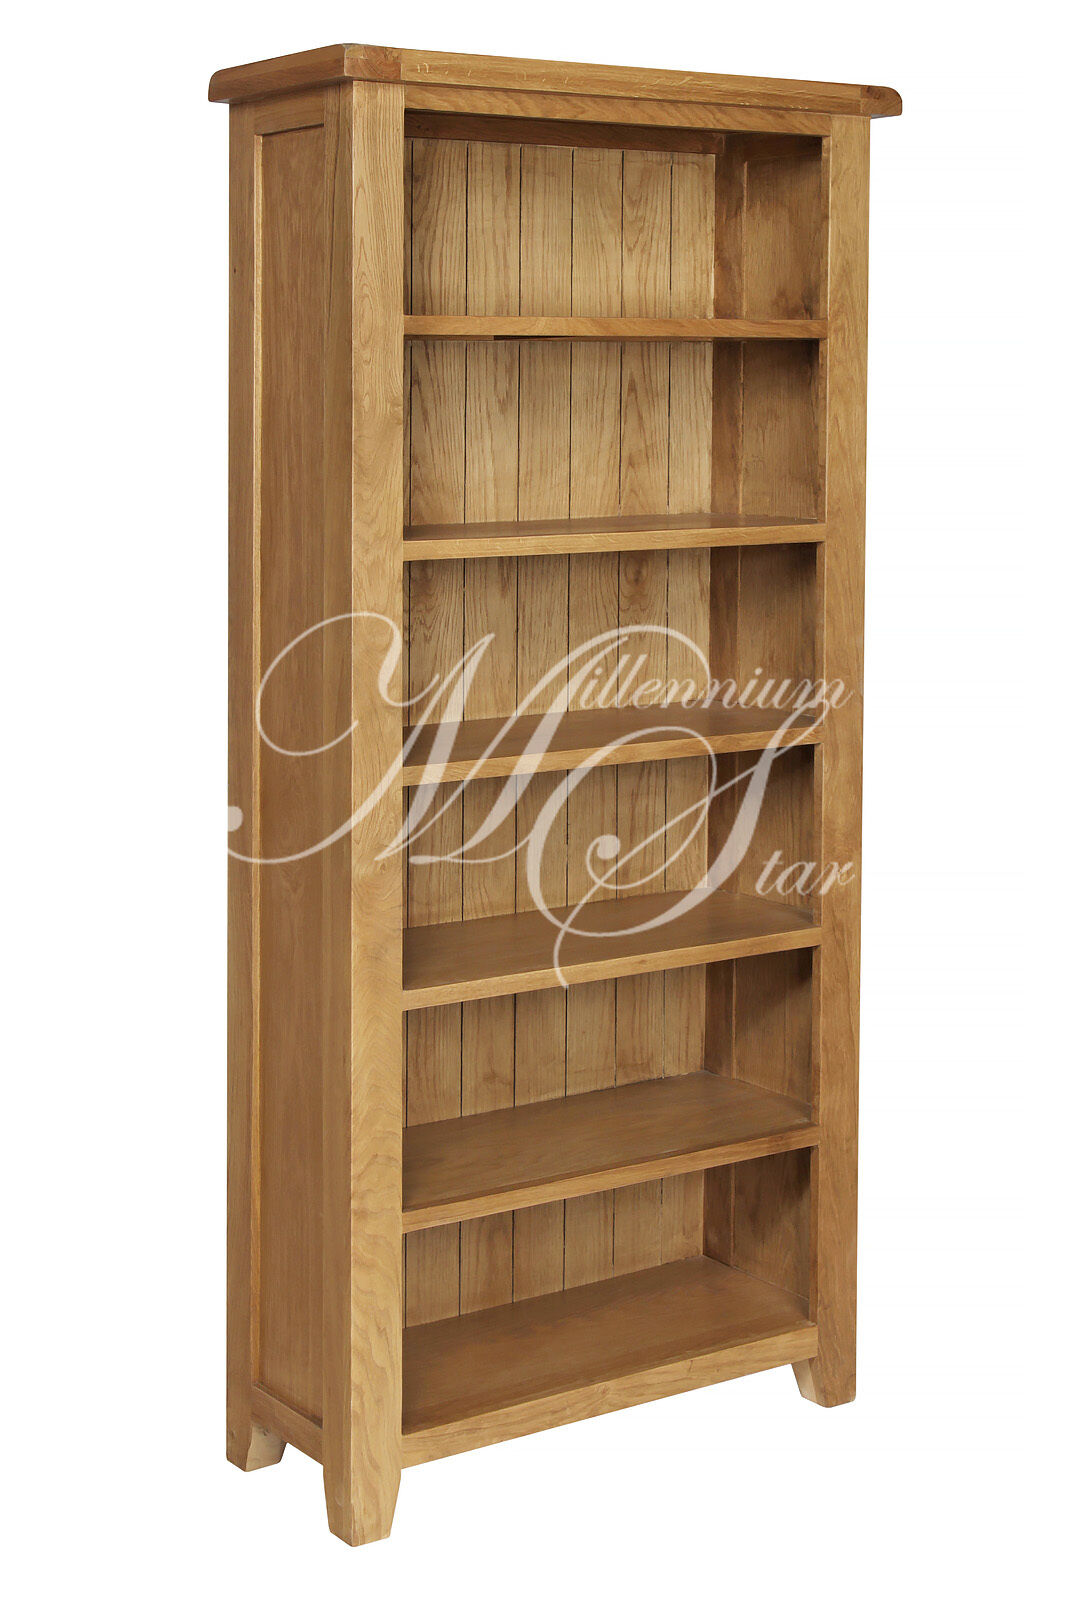 Solid chunky wood rustic oak large open bookcase display